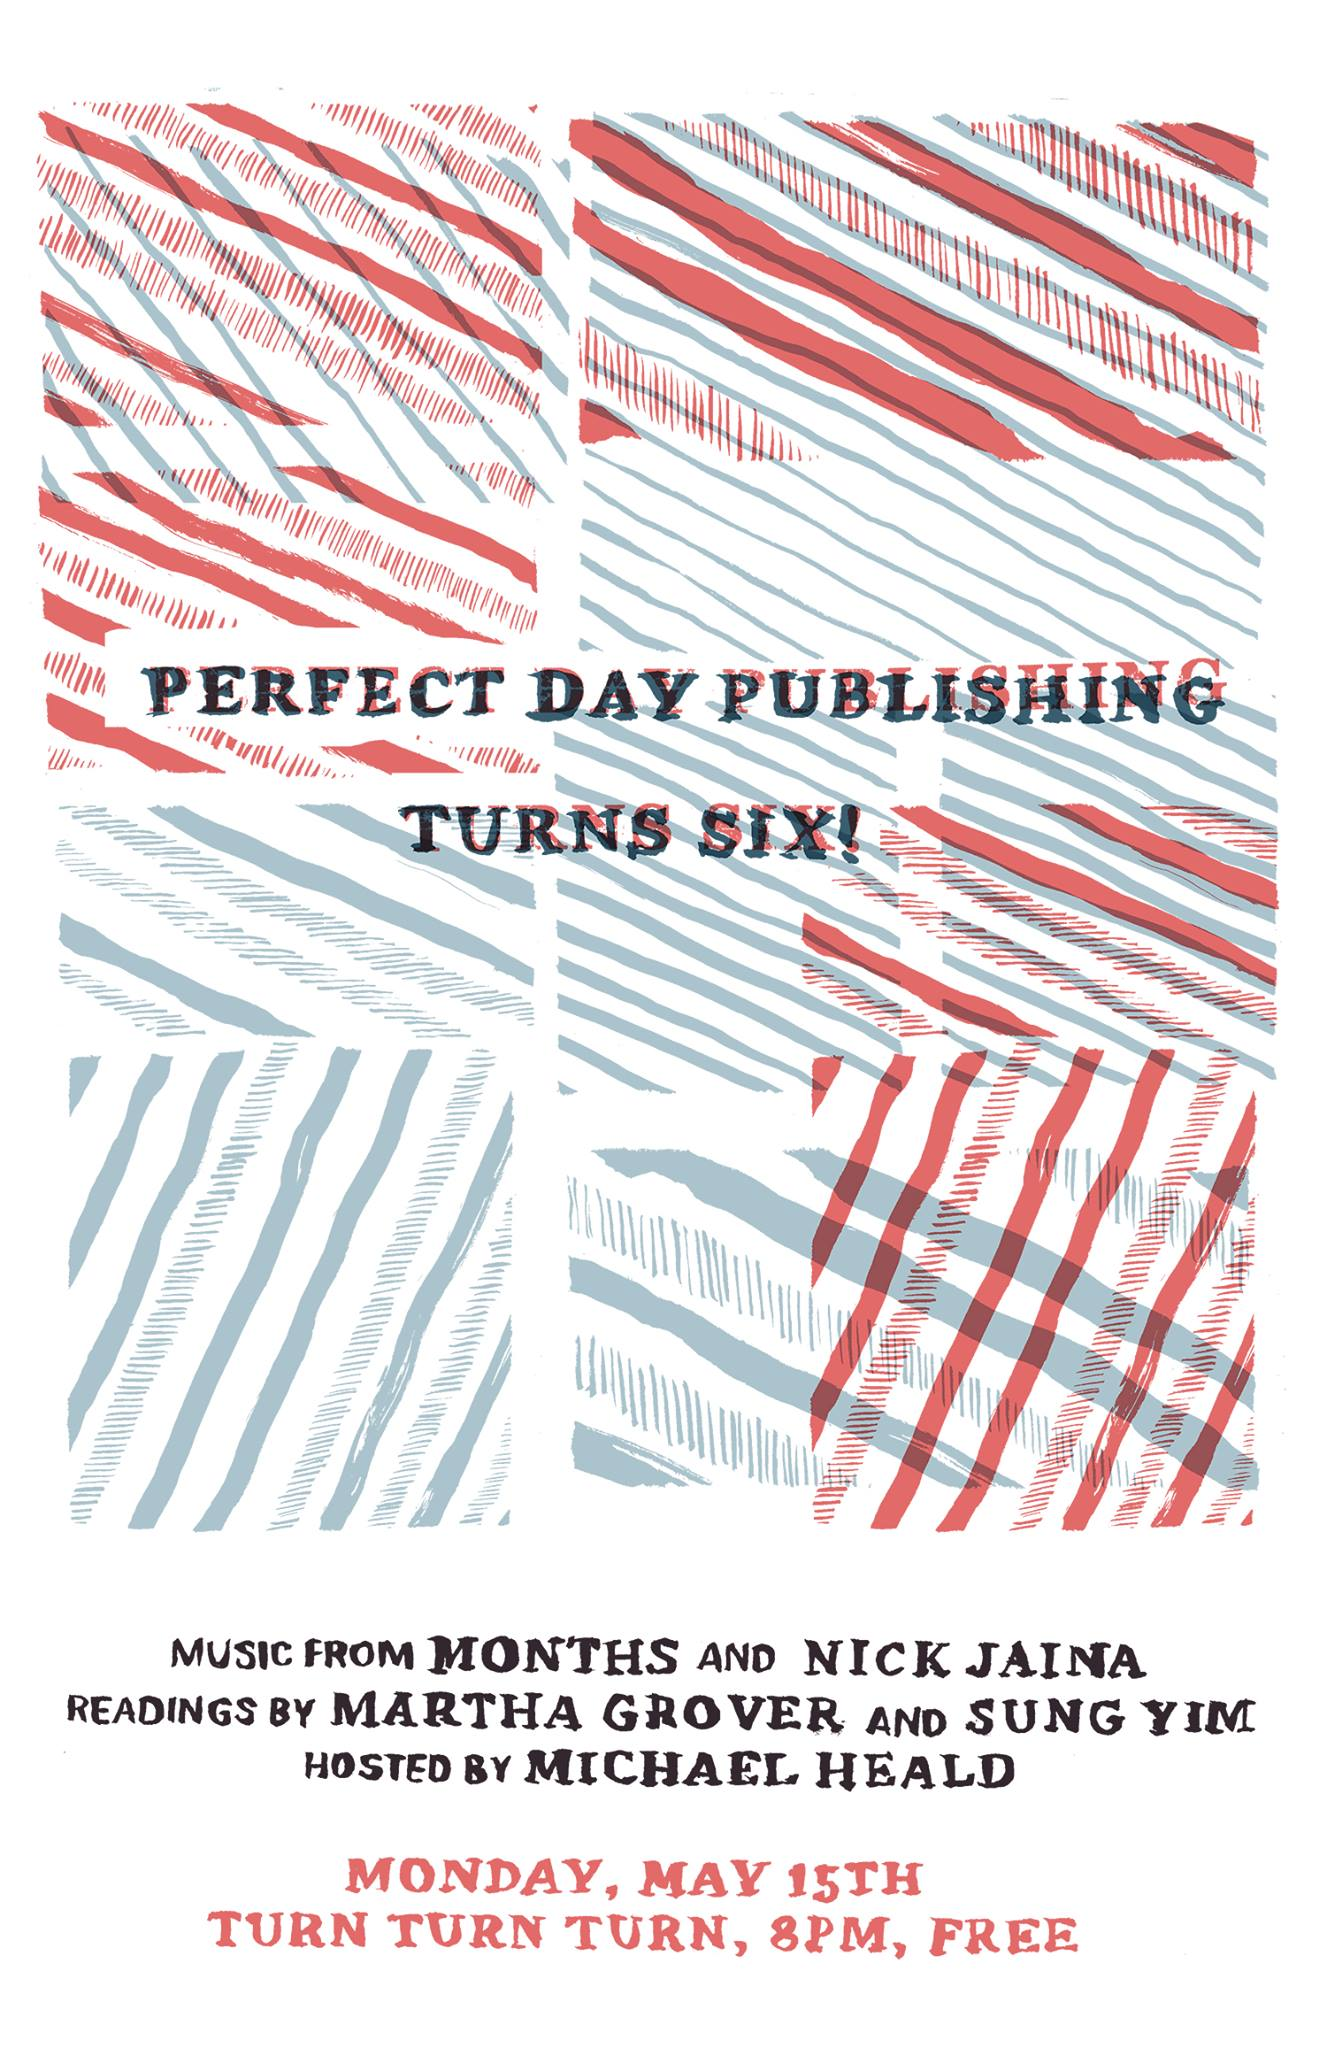 months plays perfect day publishing's sixth anniversary party at turn turn turn with nick jaina, martha grover, and sung yim